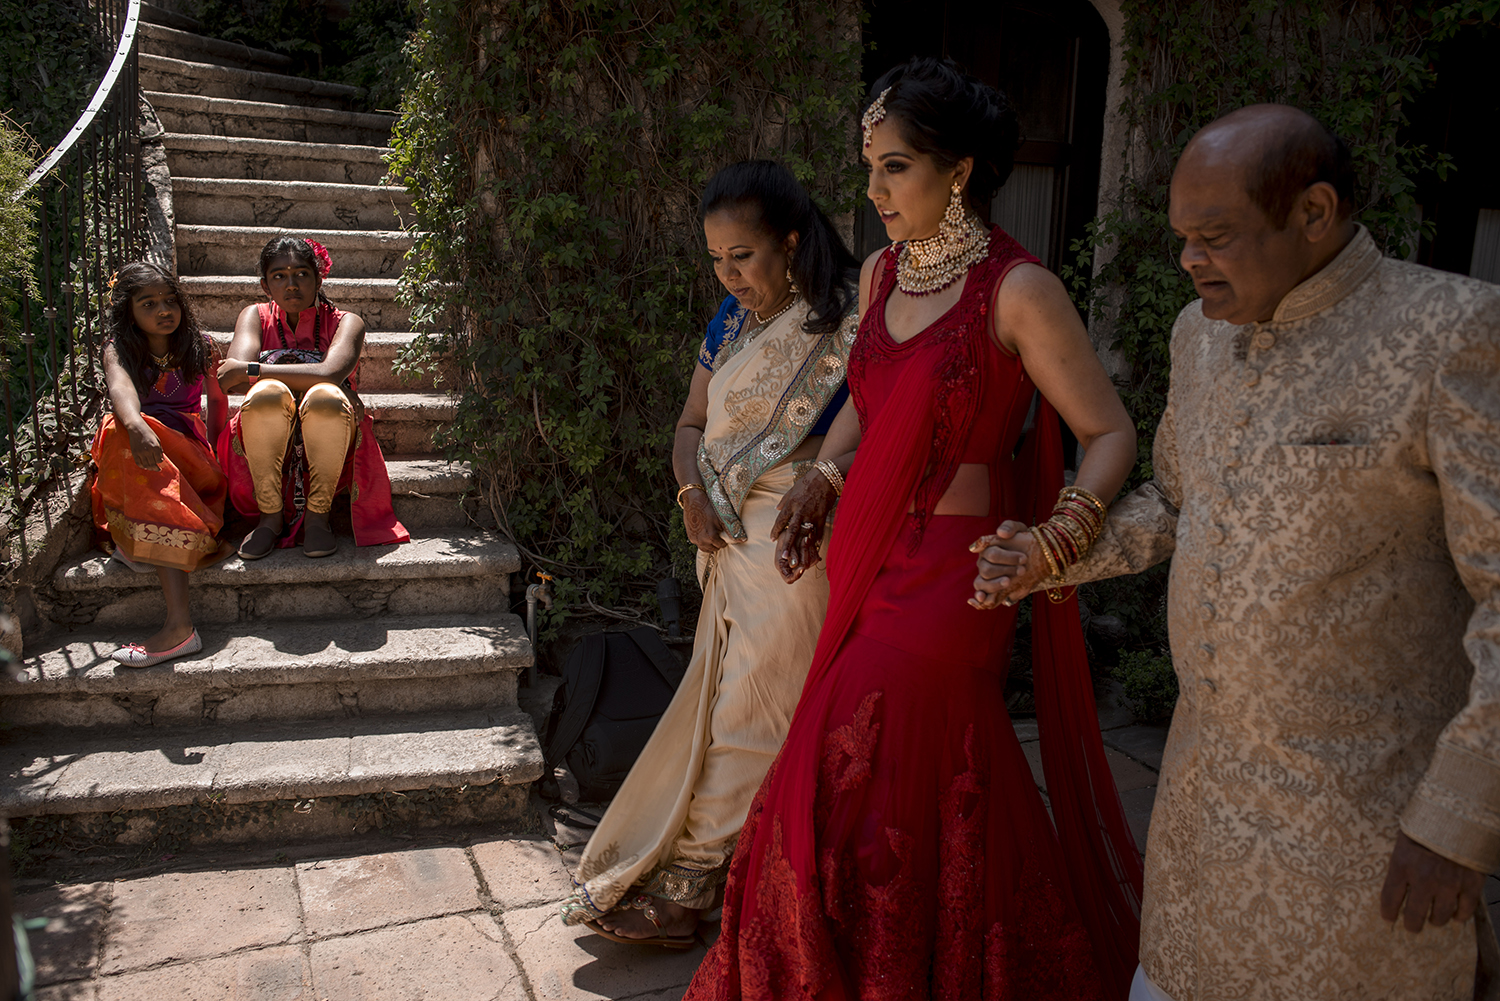 indian_wedding_san_miguel_de_allende_chio_garcia_photographer (36).jpg